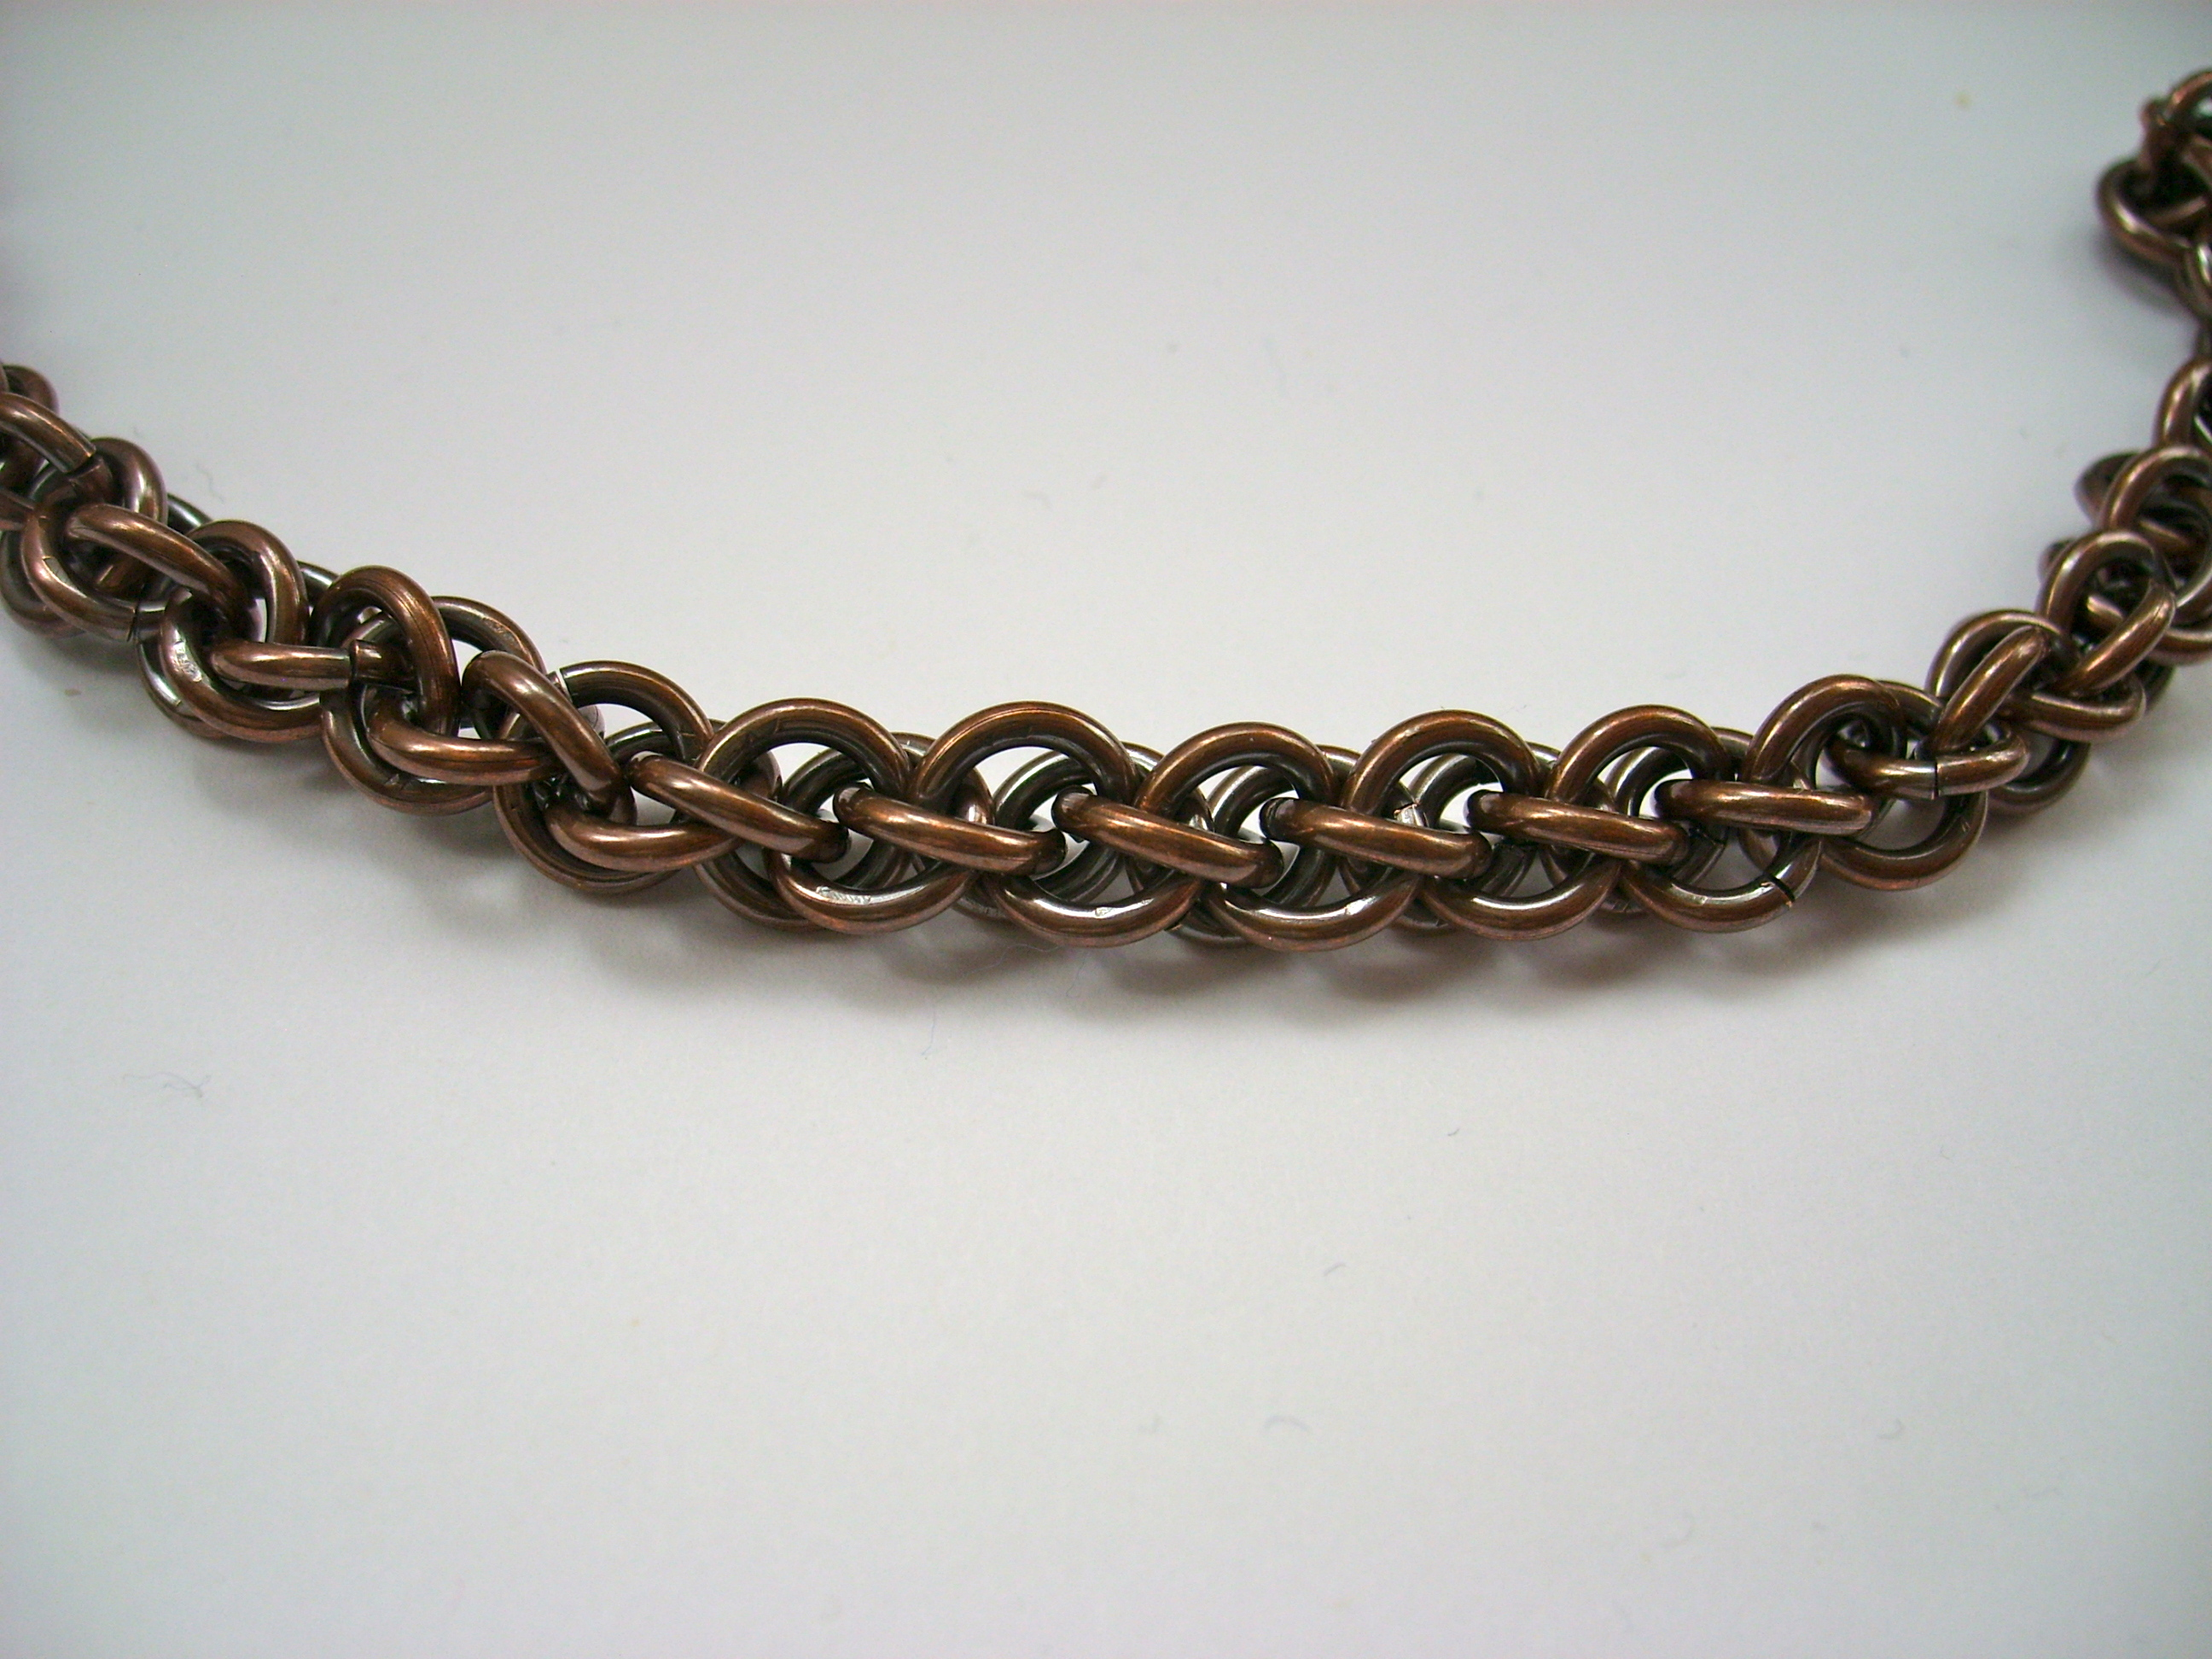 Oxidized Copper Bracelet